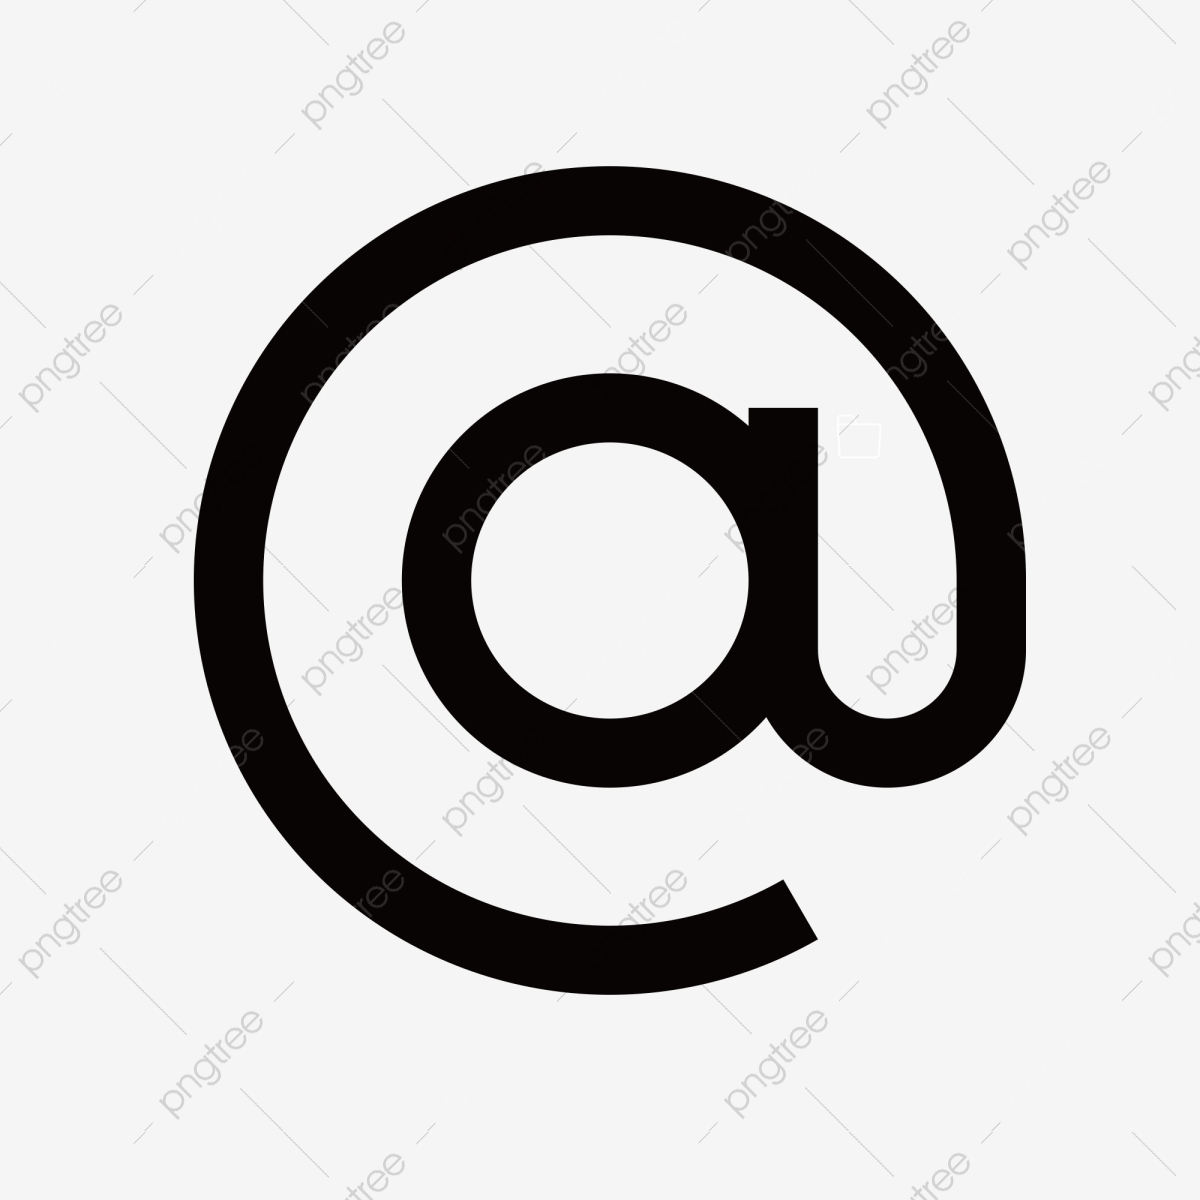 Mail Icon Png Images Vector And Psd Files Free Download On Pngtree